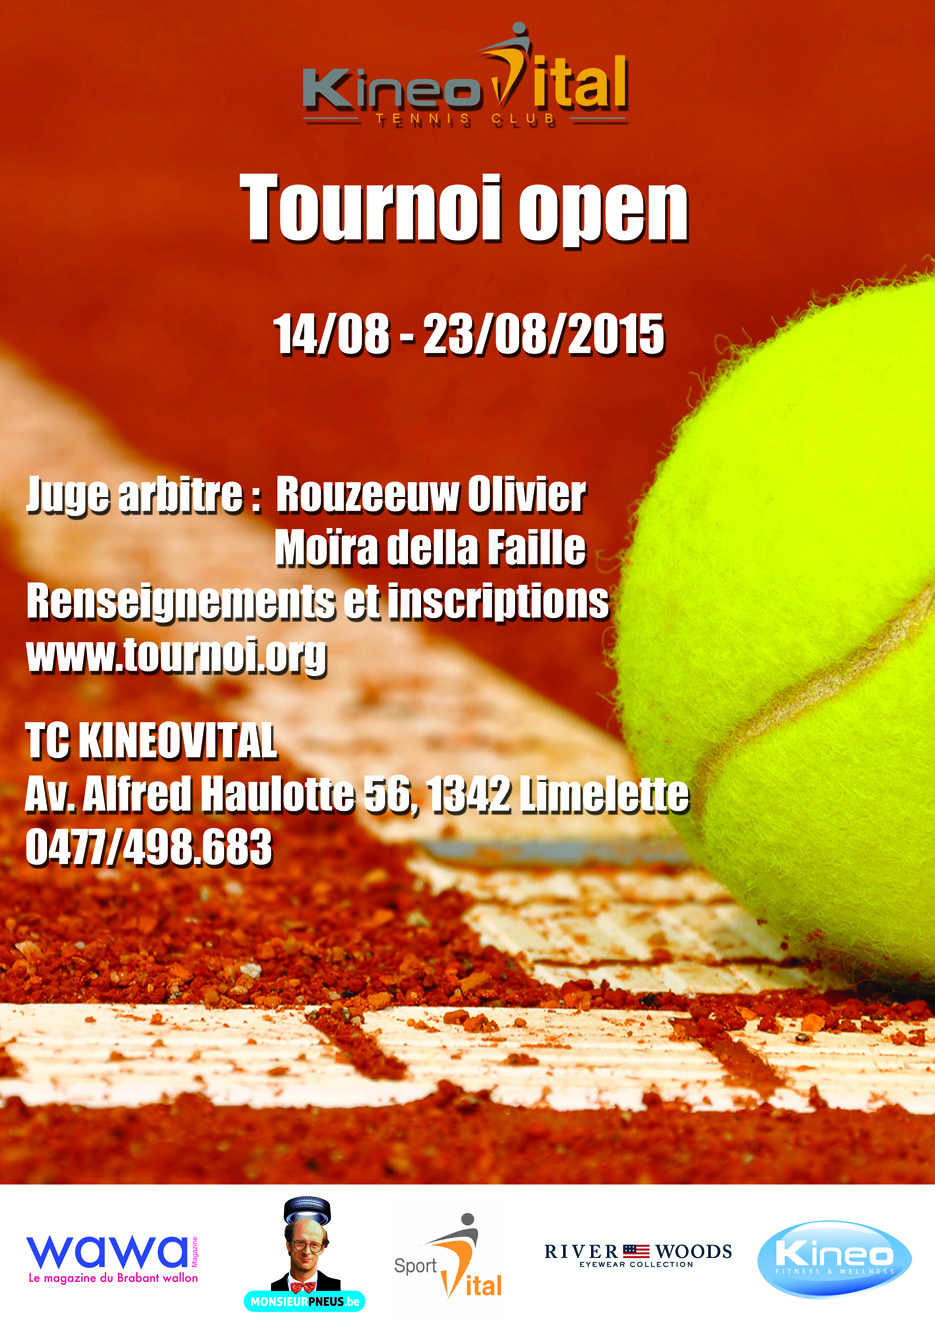 Tournoi Tennis open Kineo Vital